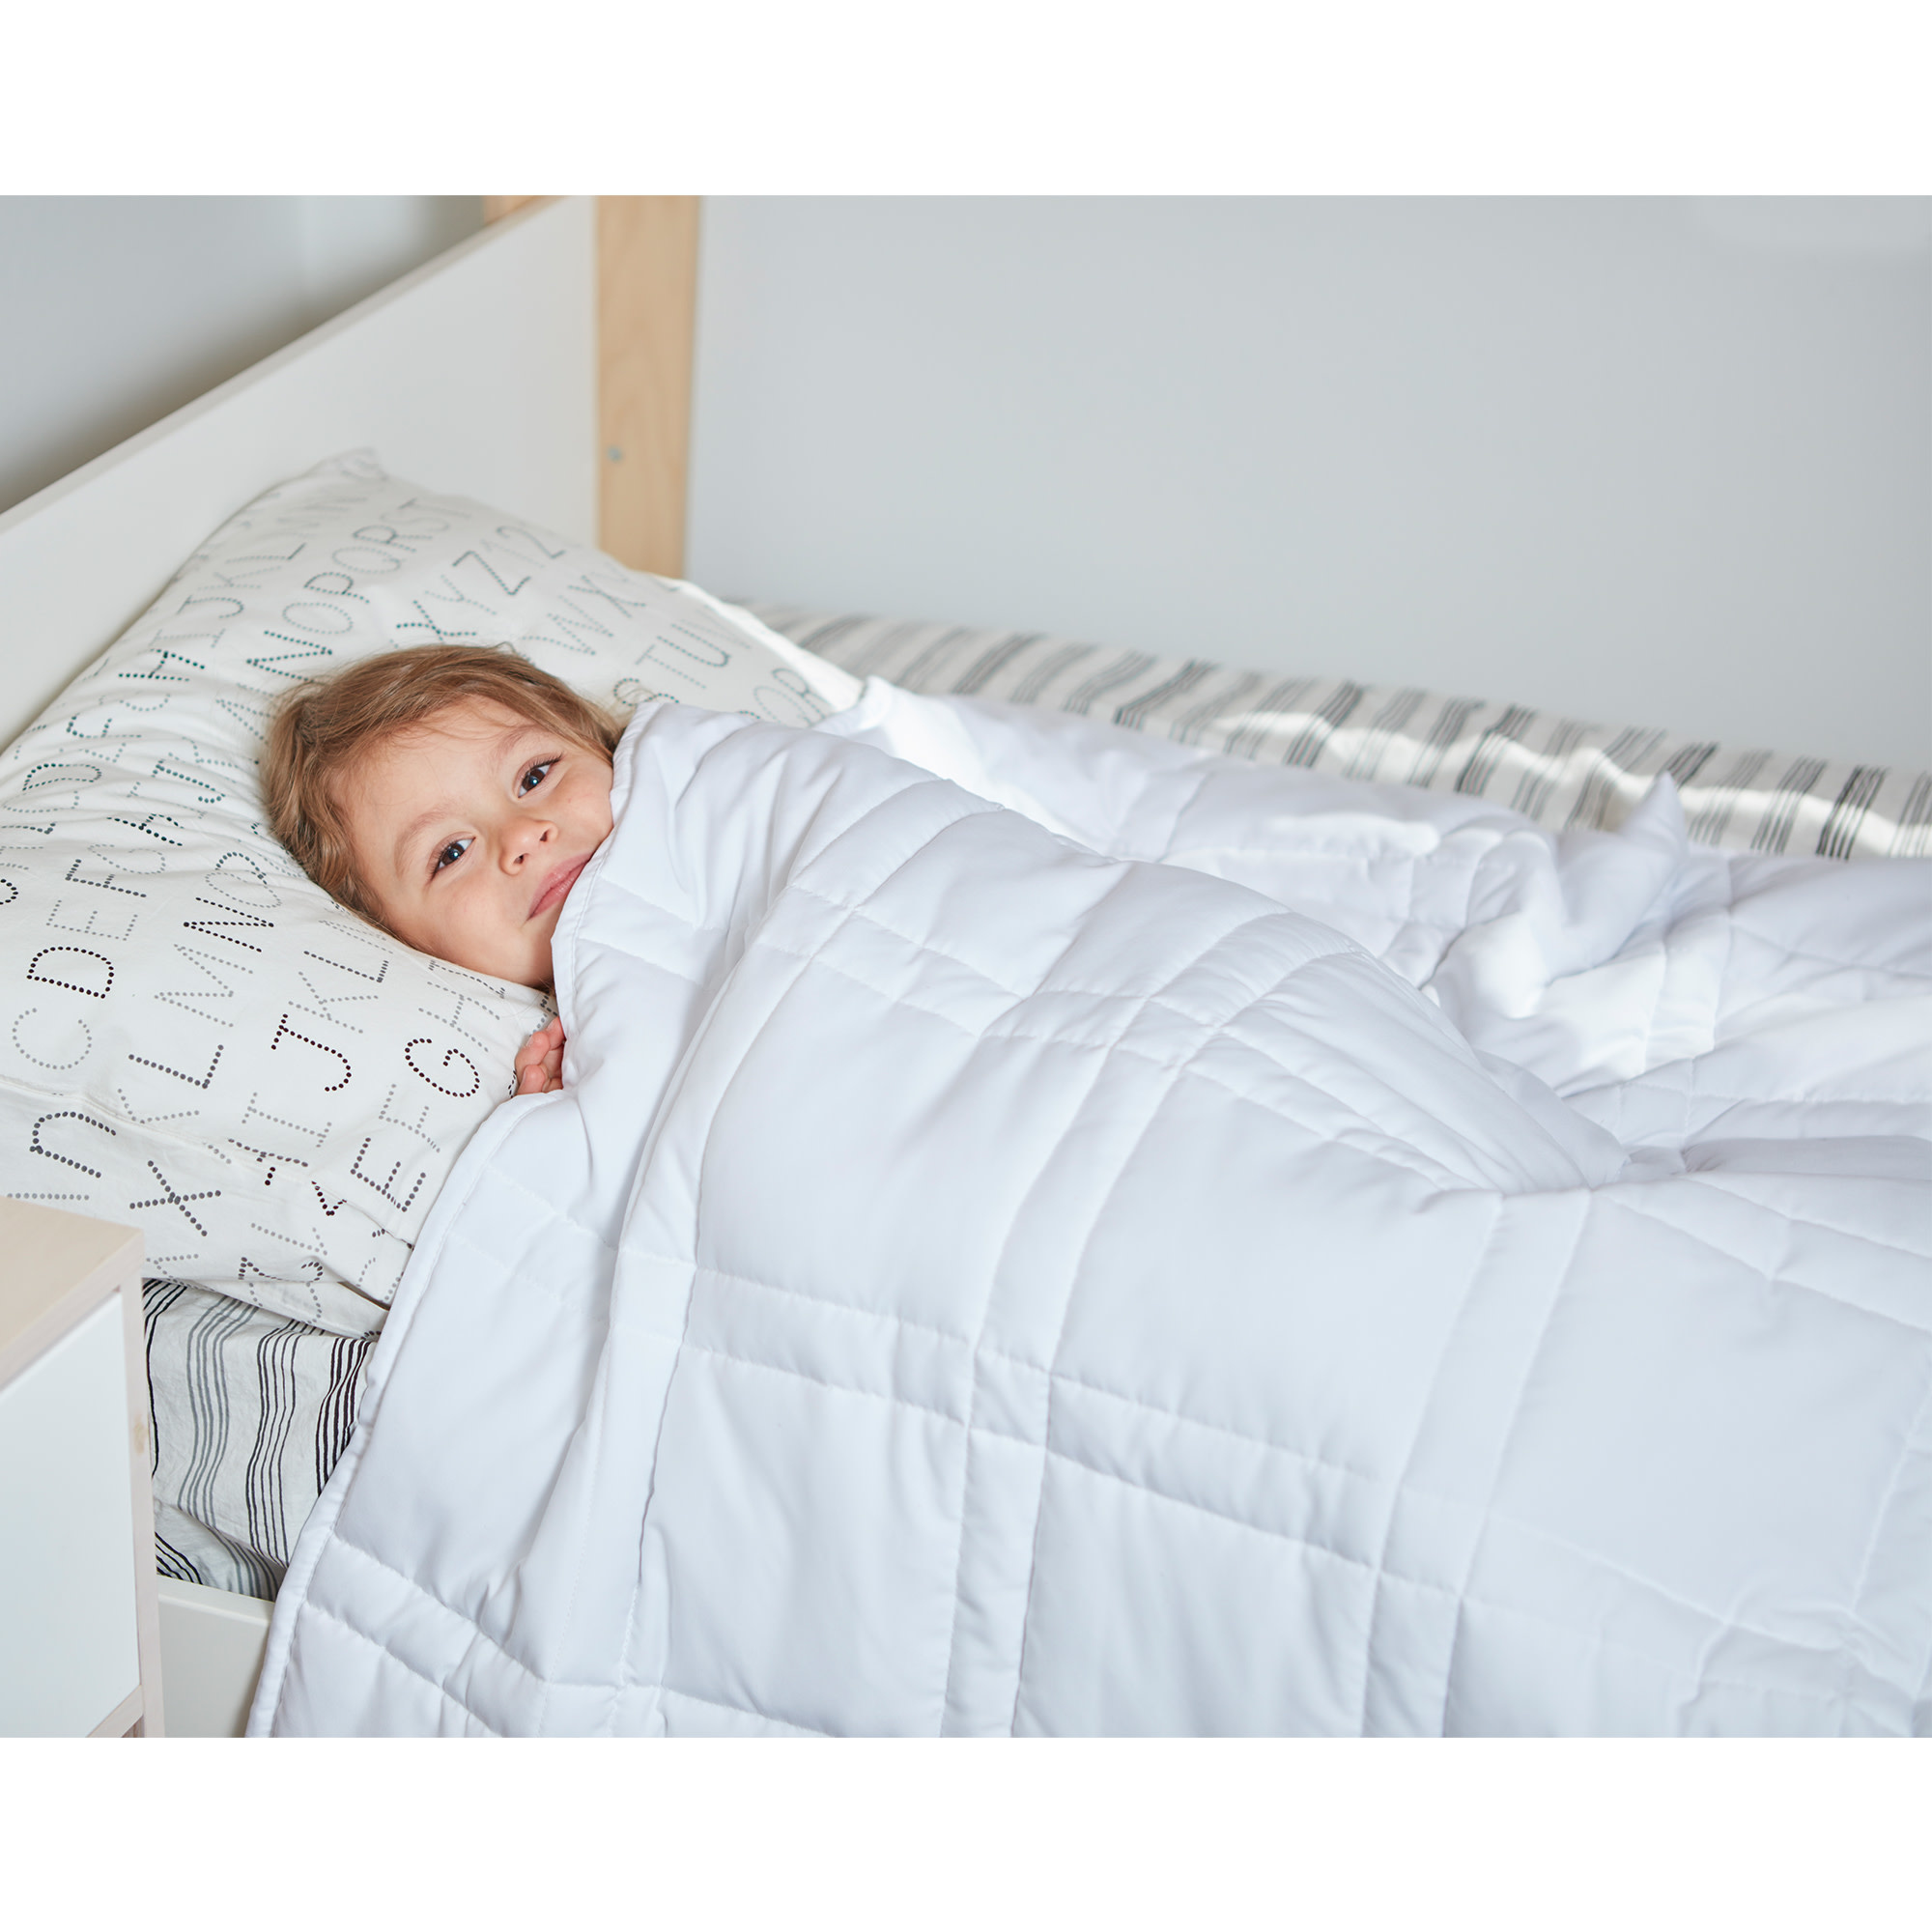 The Huggler - Weighted Blanket - 8 lbs.